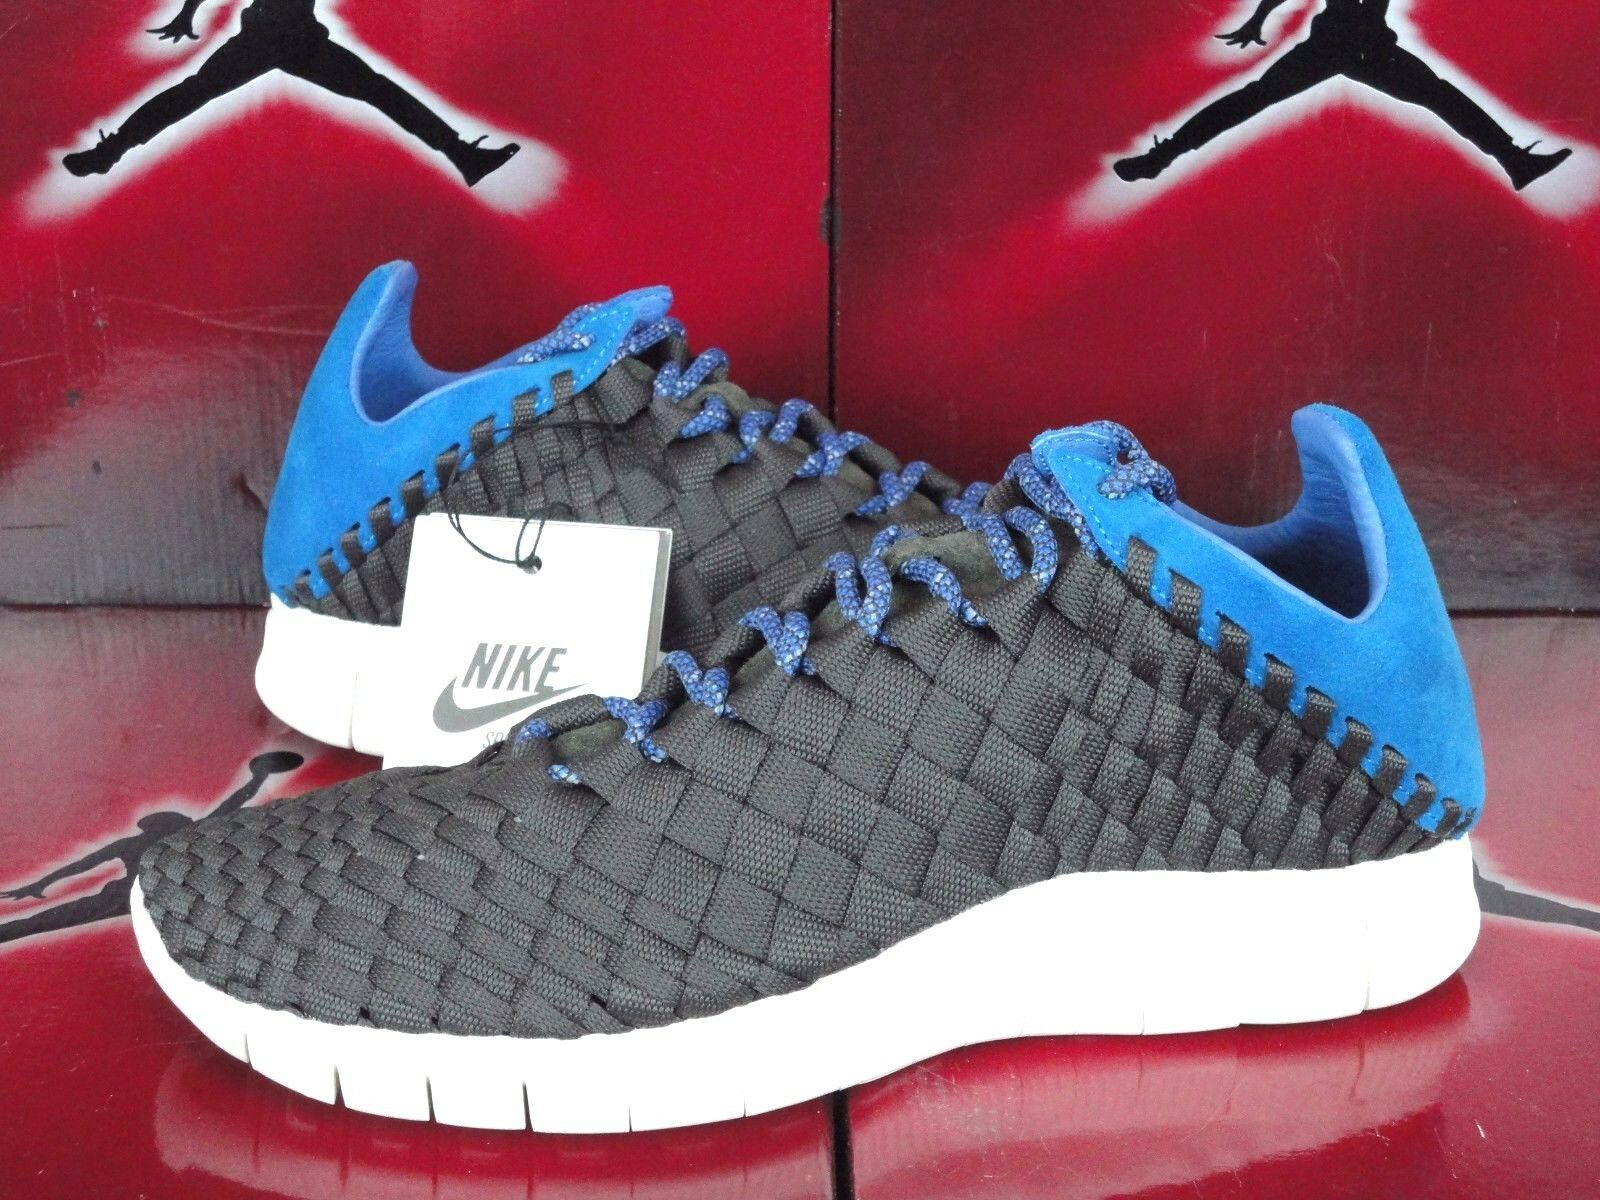 NIKE FREE INNEVA WOVEN NEWSPRINT GREY-blueE HERO-SAIL SZ 9.5 [579916-004] SP LAB